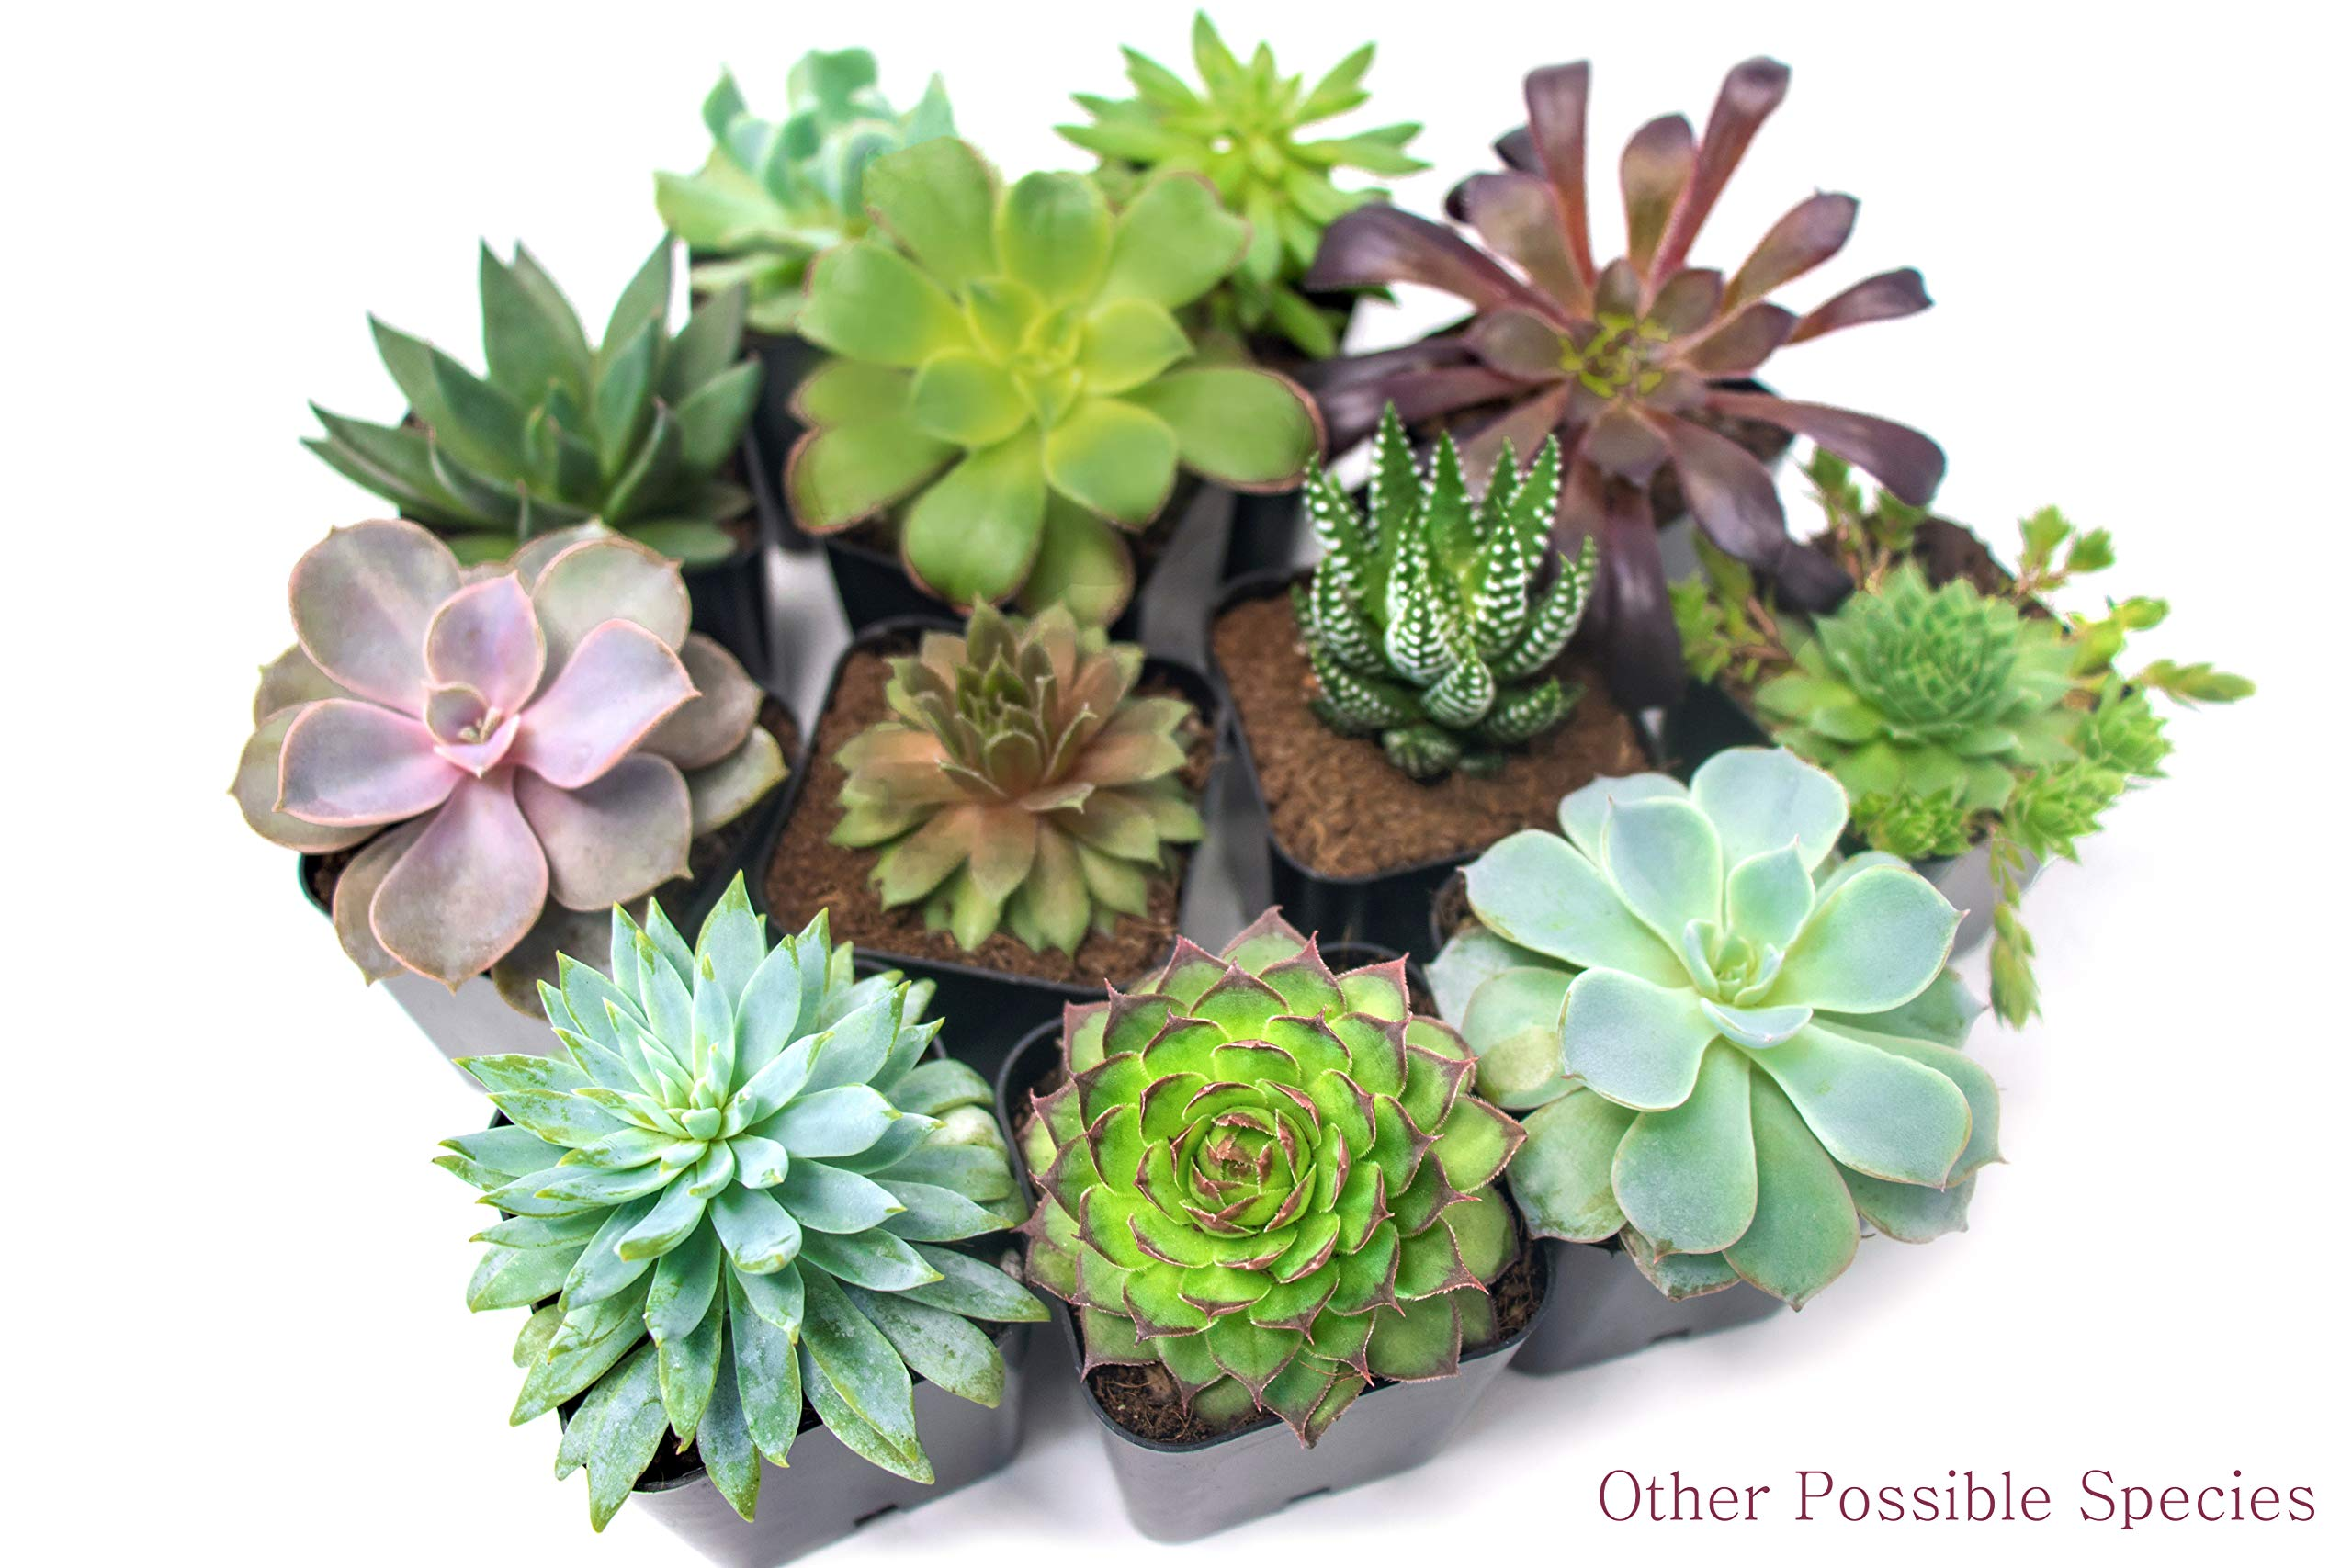 Succulent Plants (5 Pack), Fully Rooted in Planter Pots with Soil -  Real Live Potted Succulents / Unique Indoor Cactus Decor by Plants for Pets 6 HAND SELECTED: Every pack of succulents we send is hand-picked. You will receive a unique collection of species that are FULLY ROOTED IN 2 INCH POTS, which will be similar to the product photos (see photo 2 for scale). Note that we rotate our nursery stock often, so the exact species we send changes every week. THE EASIEST HOUSE PLANTS: More appealing than artificial plastic or fake faux plants, and care is a cinch. If you think you can't keep houseplants alive, you're wrong; our succulents don't require fertilizer and can be planted in a decorative pot of your choice within seconds. DIY HOME DECOR: The possibilities are only limited by your imagination; display them in a plant holder, a wall mount, a geometric glass vase, or even in a live wreath. Because of their amazingly low care requirements, they can even make the perfect desk centerpiece for your office.